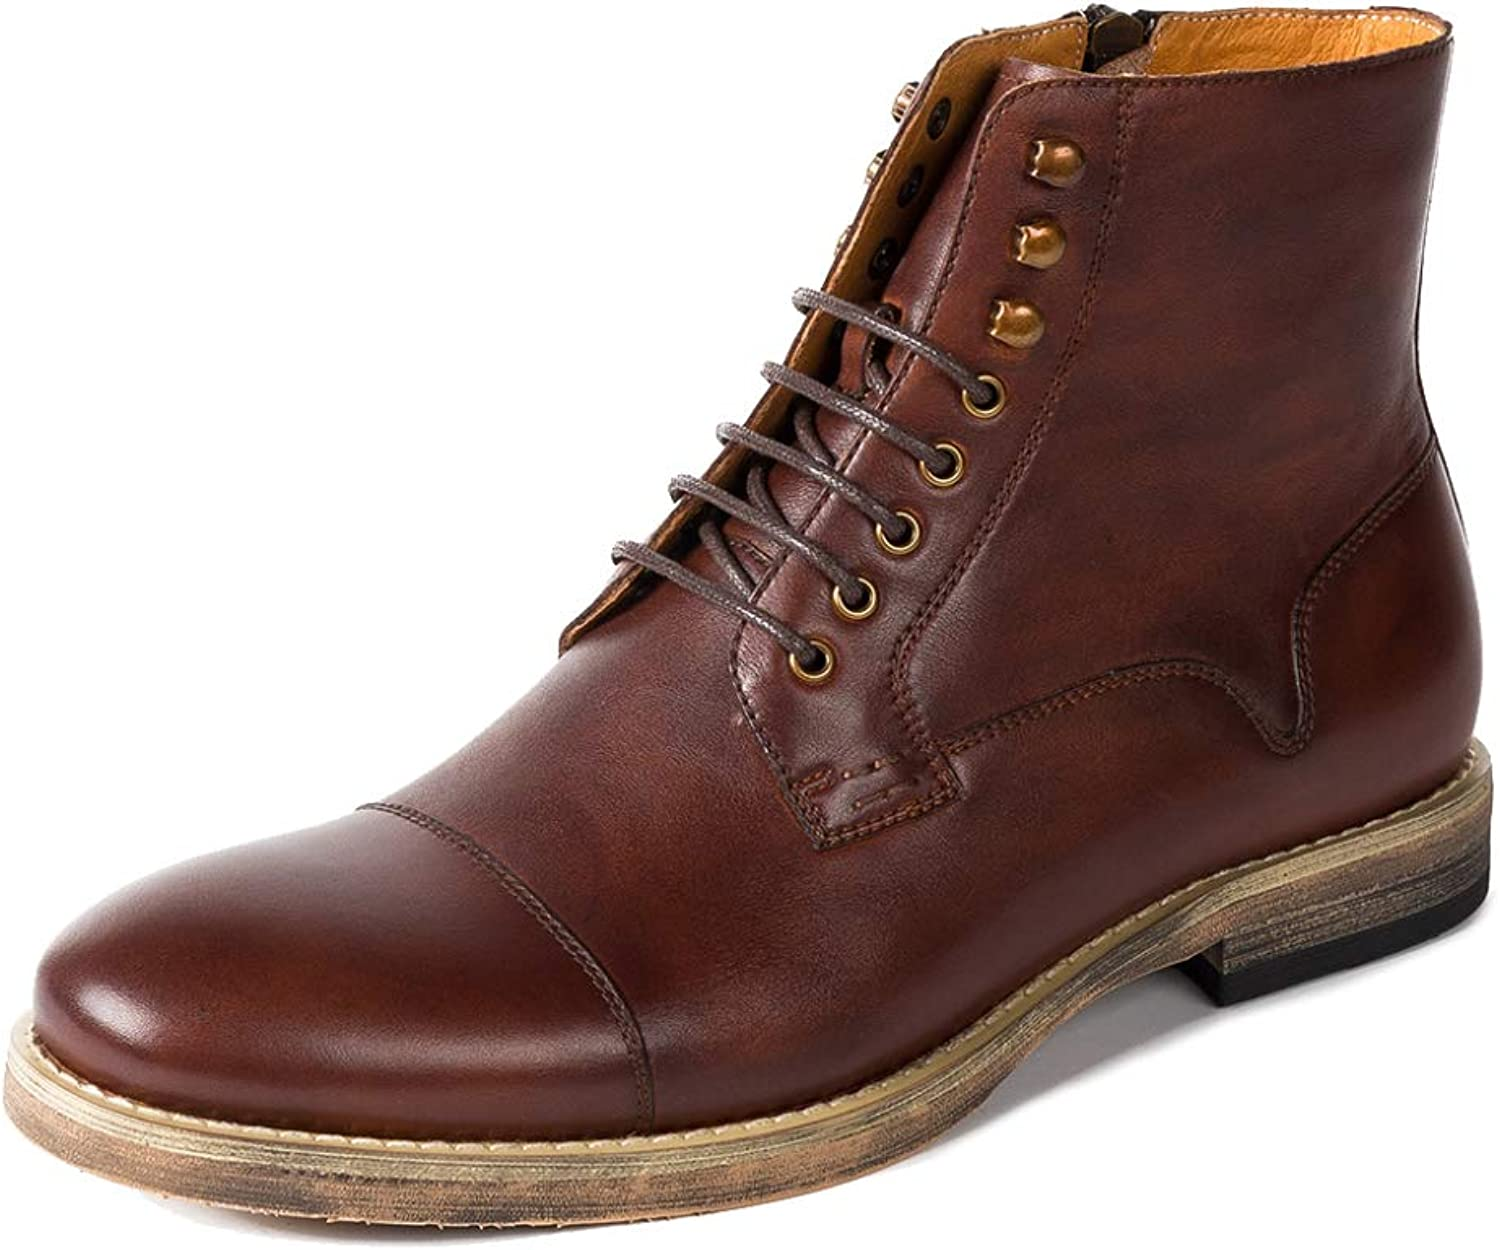 Boots Men's Leather Martin Boots Chukka Desert Hiking shoes Snow Boots Work Boots Lace-up Boots